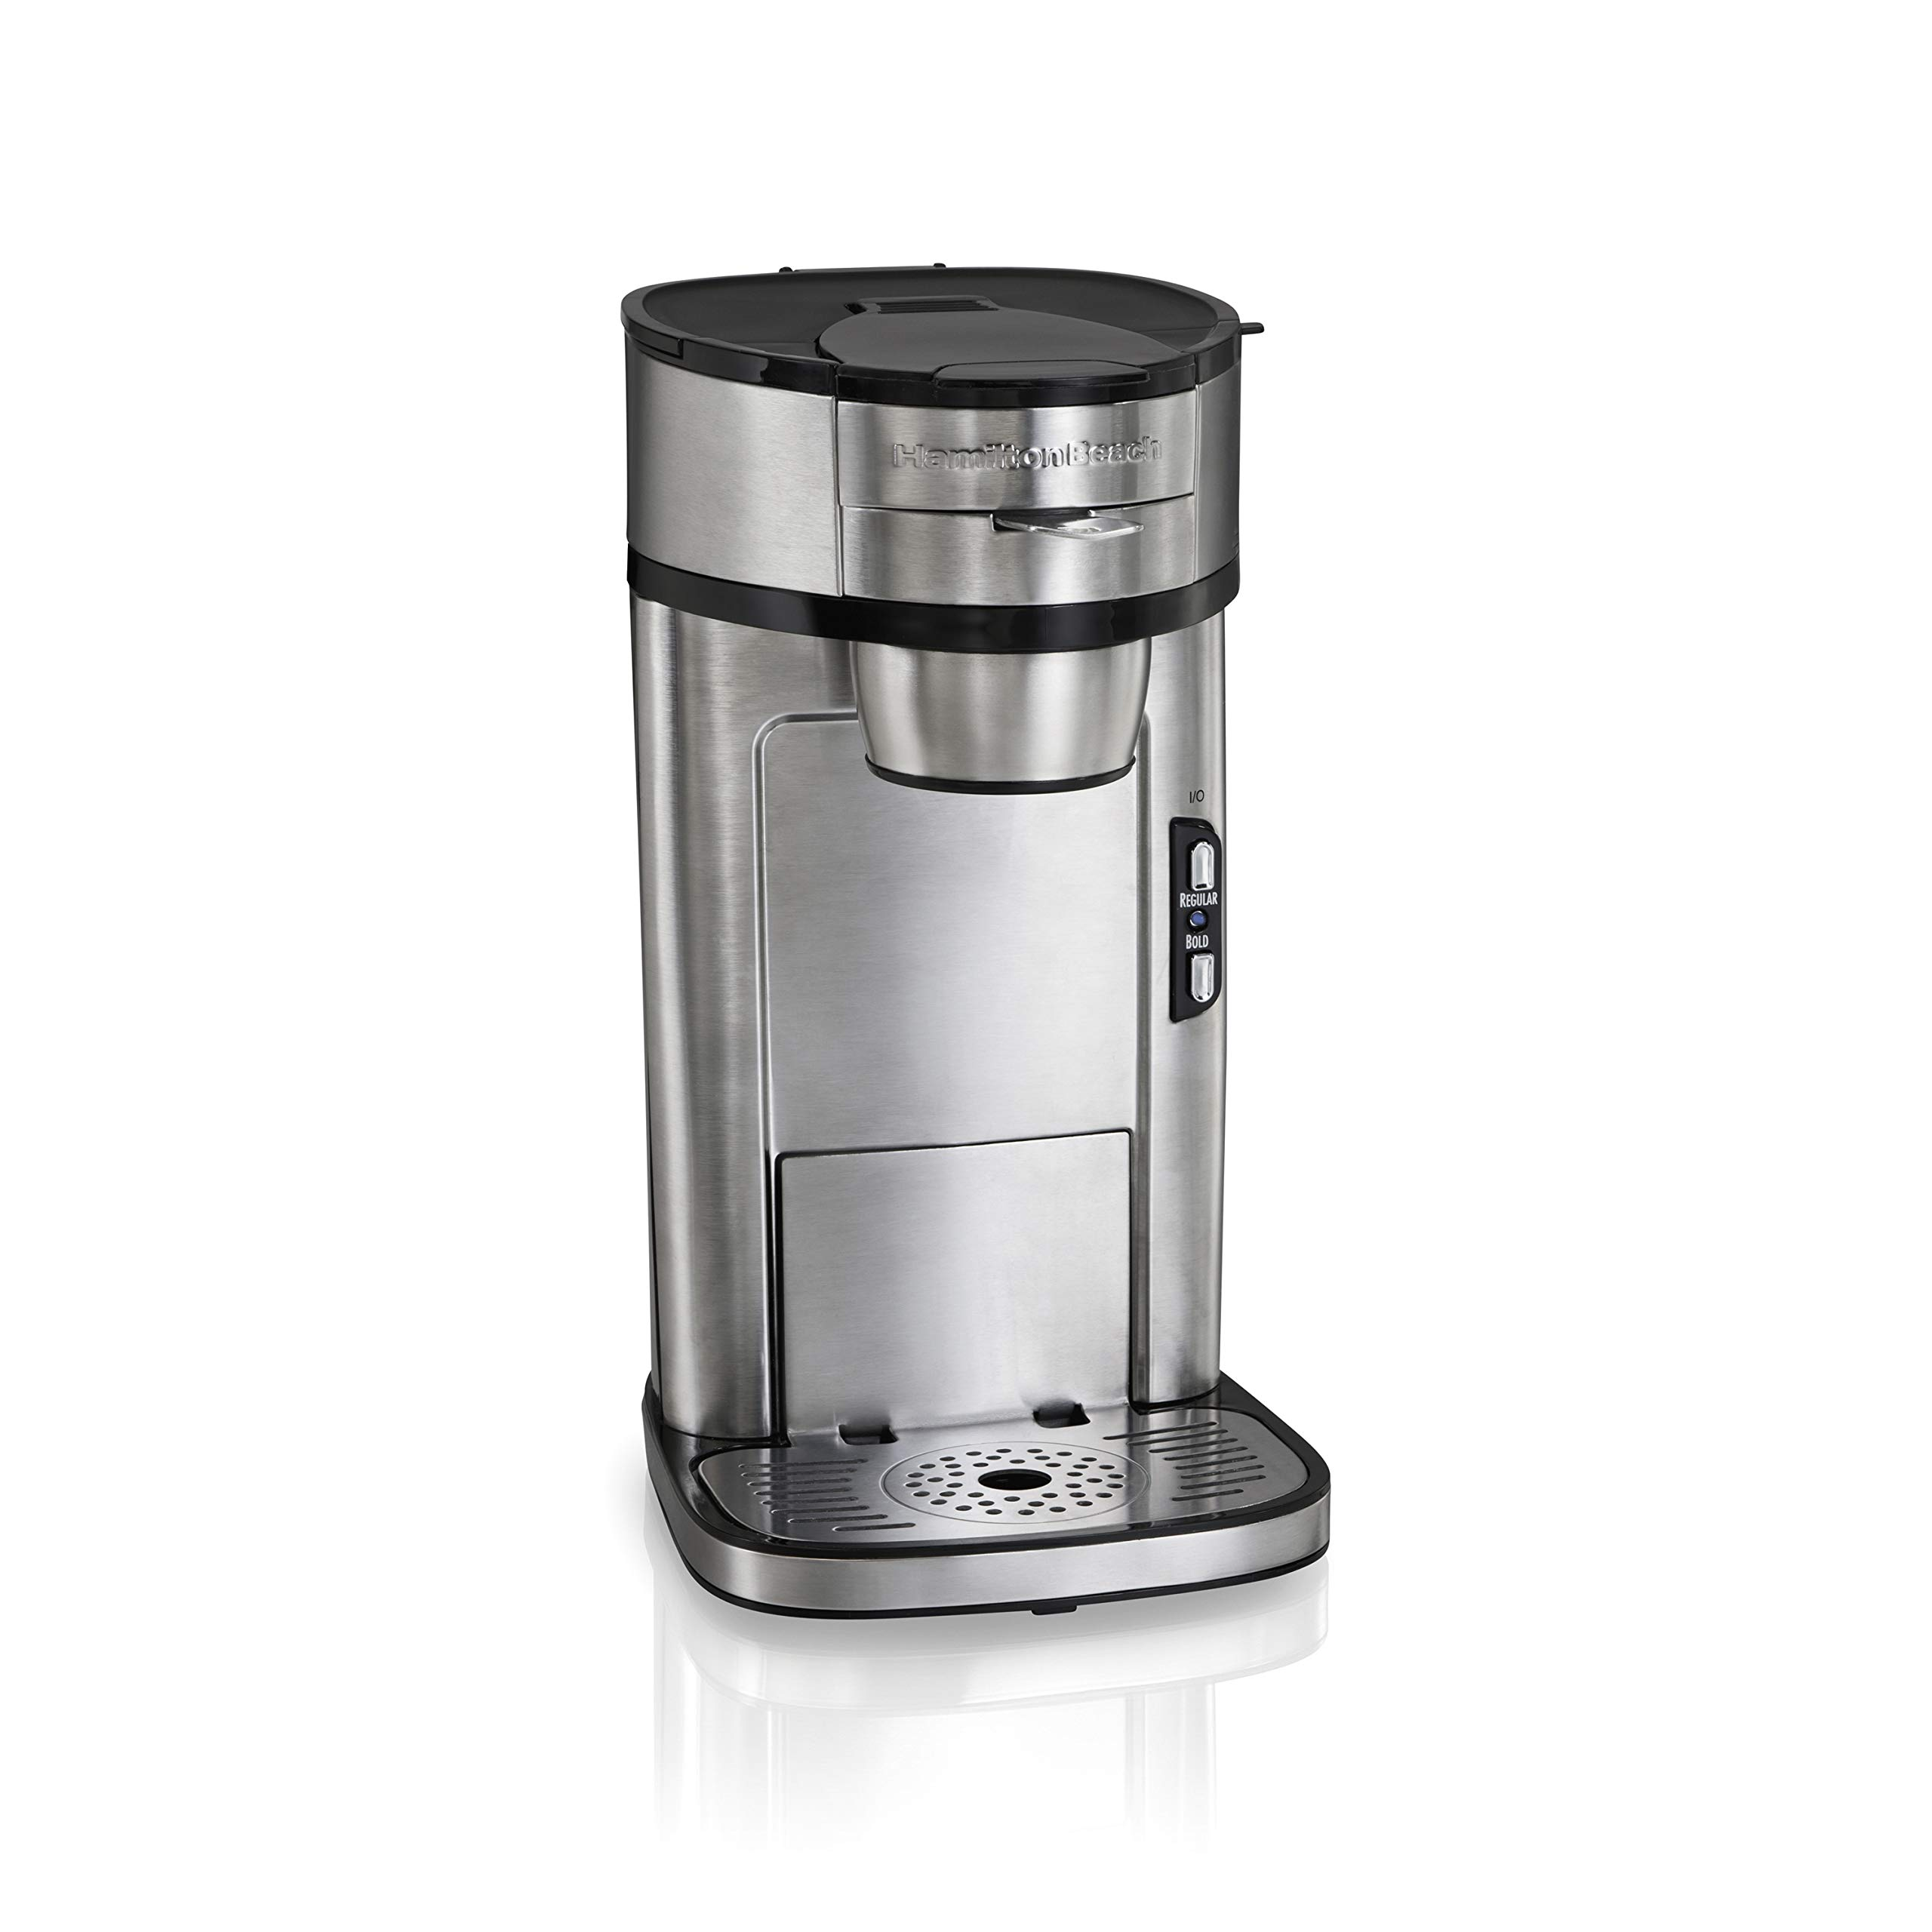 Hamilton Beach The Scoop Single Serve Coffee Maker, Fast Brewing, Stainless Steel (49981A), by Hamilton Beach